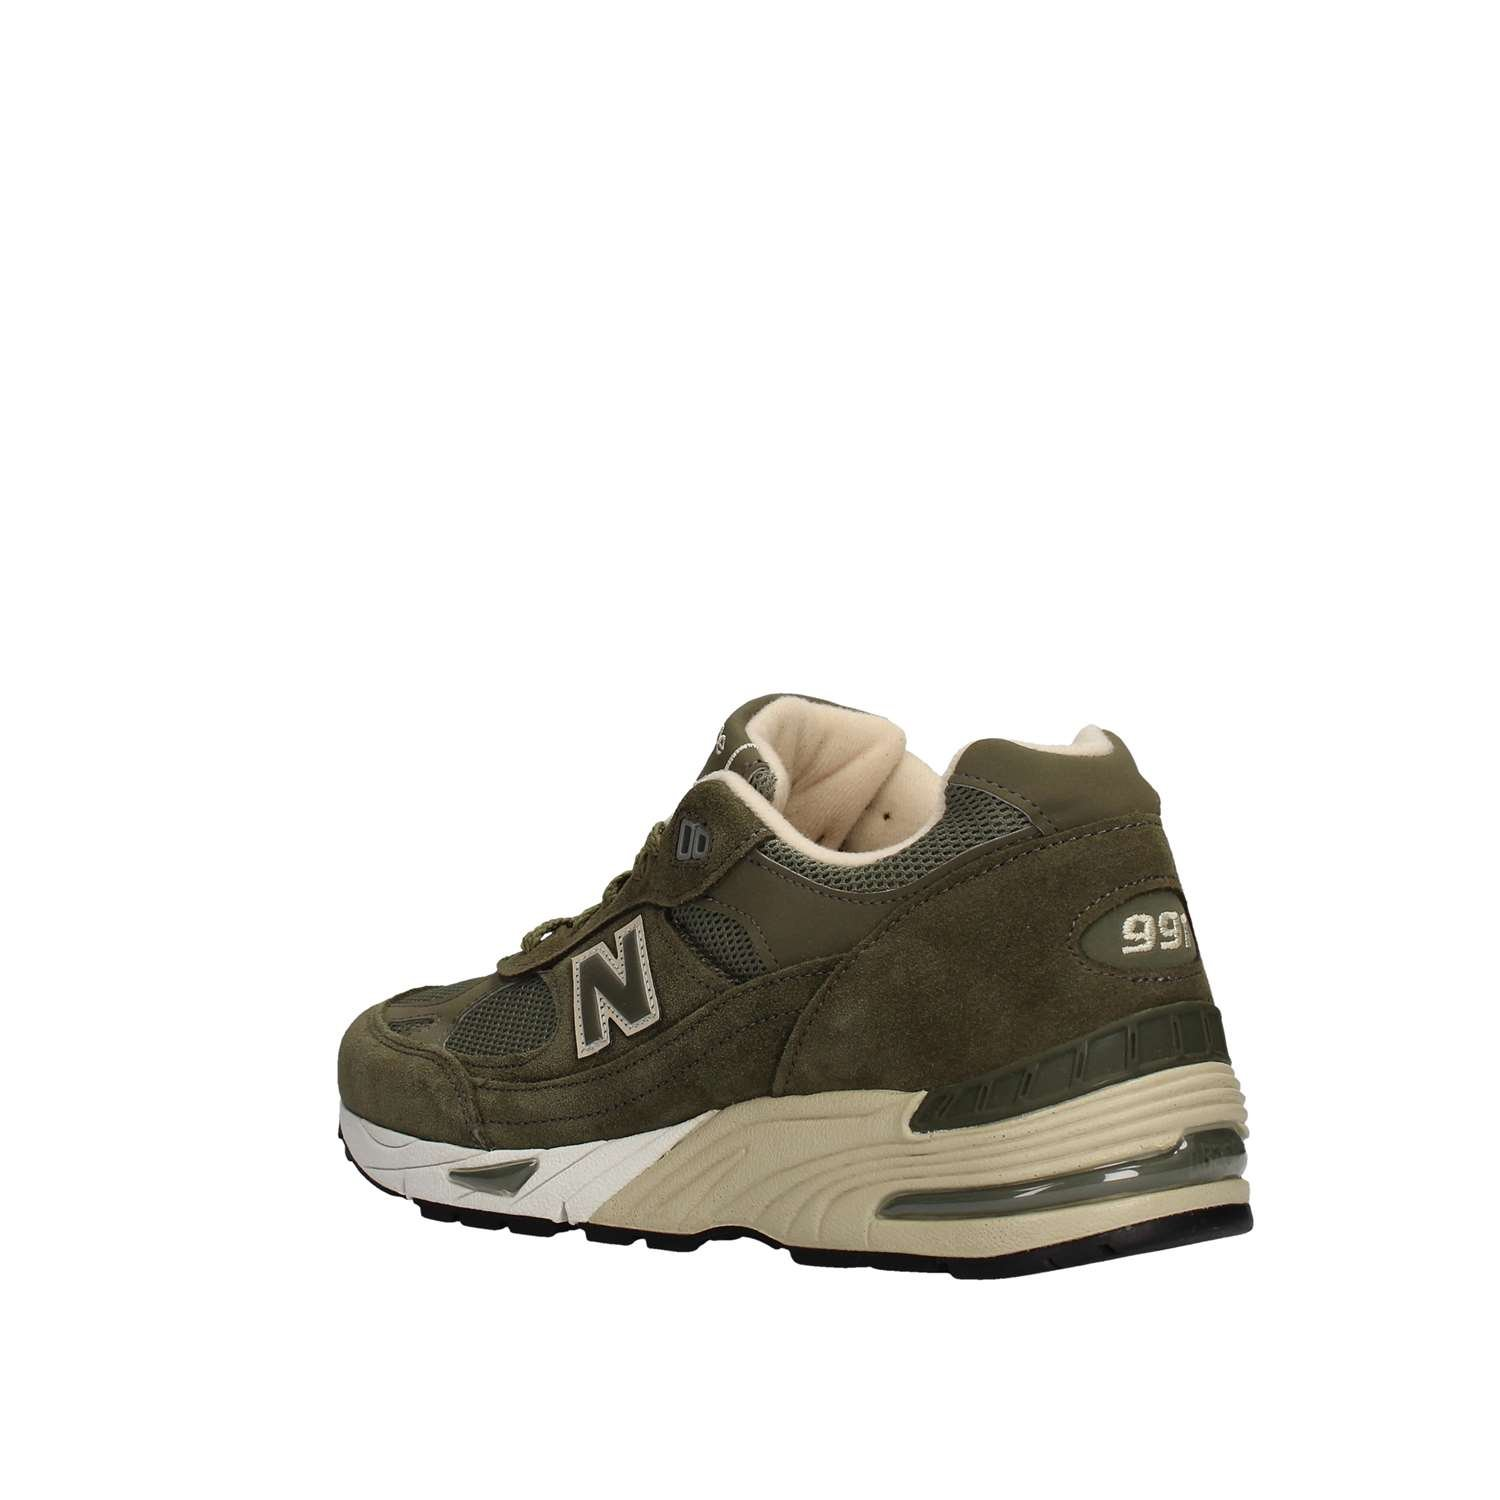 30ad98298475b SNEAKER NB 991 MADE IN ENGLAND IN PELLE E MESH  Amazon.co.uk  Clothing